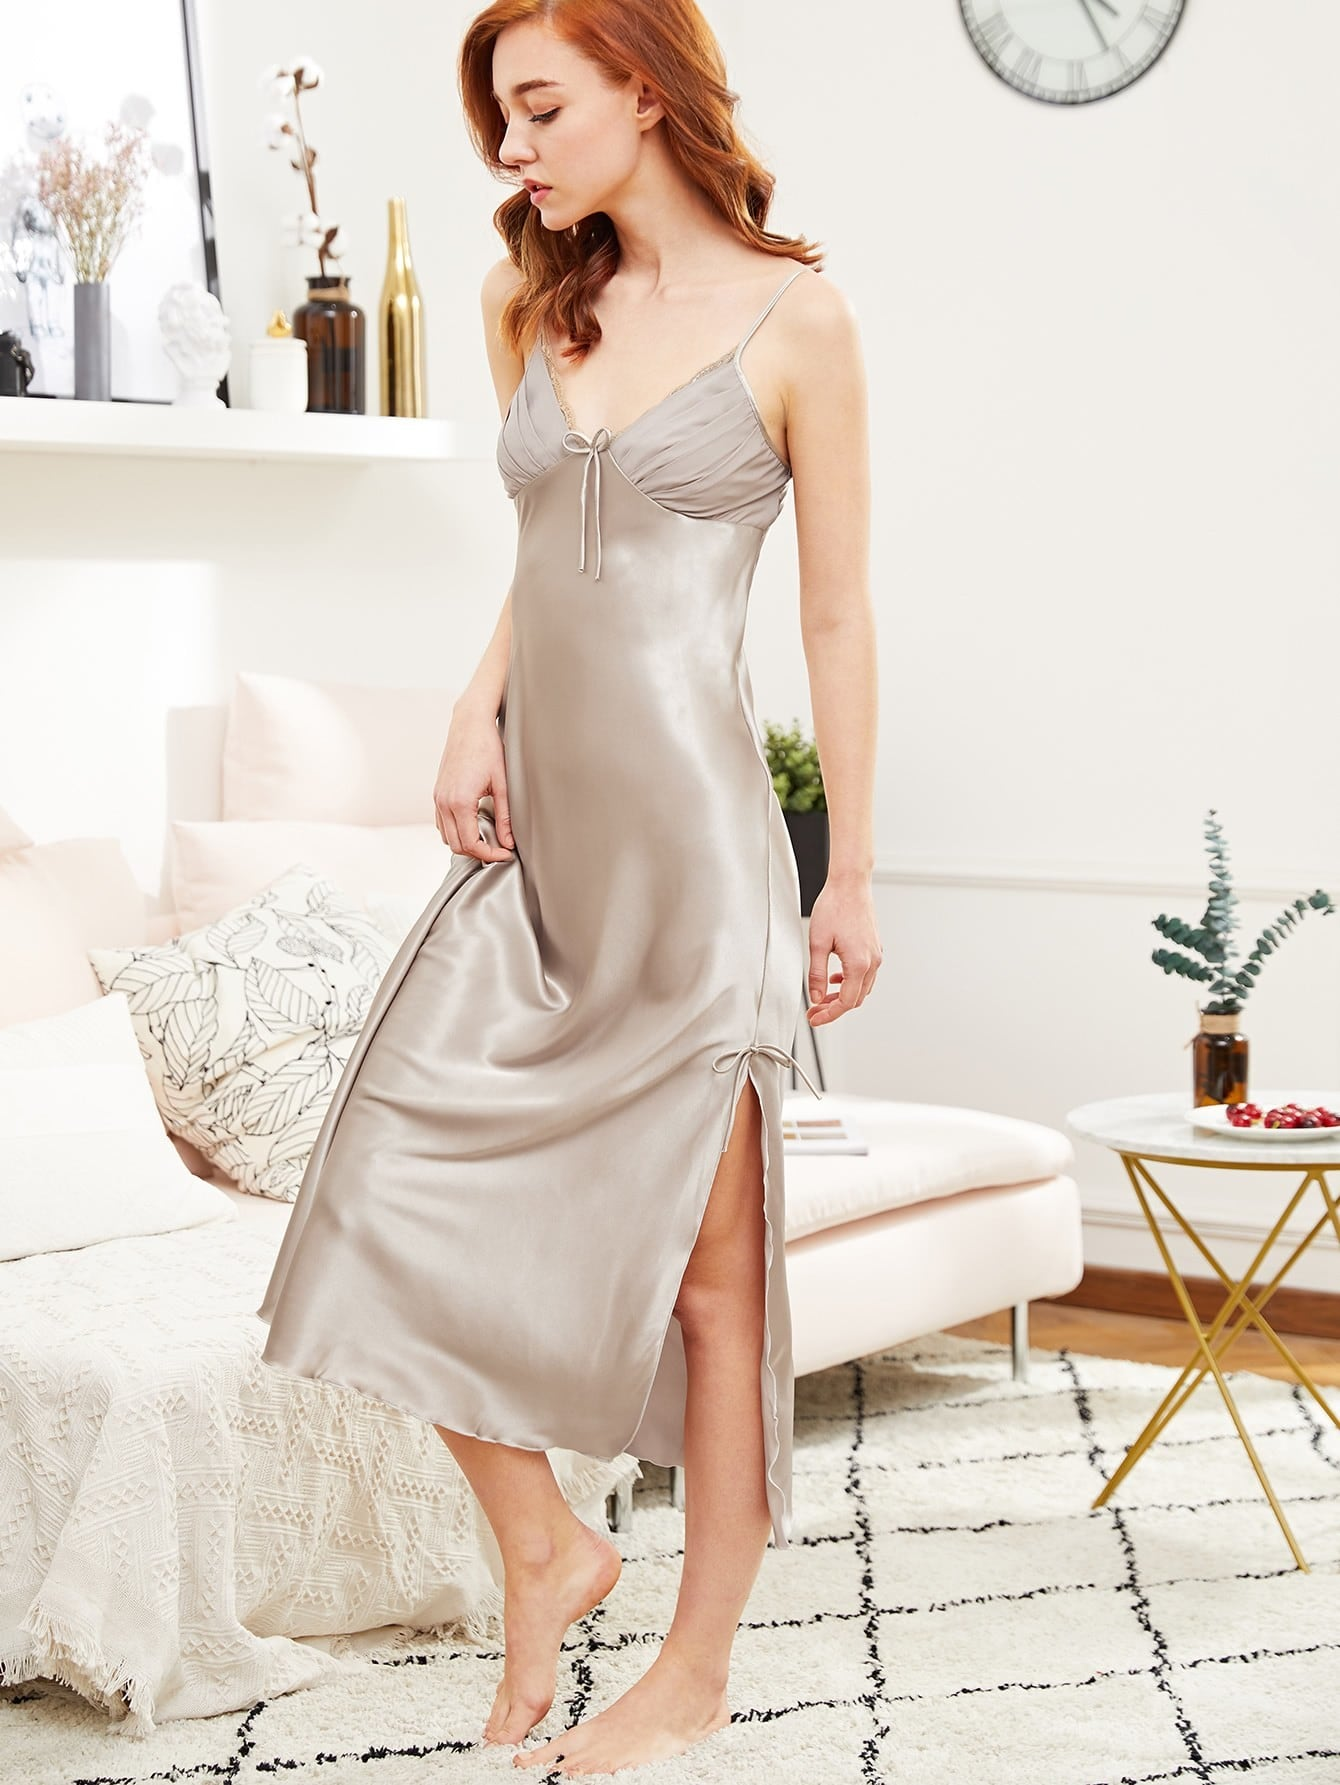 Satin Slit Hem Cami Night Dress для охоты